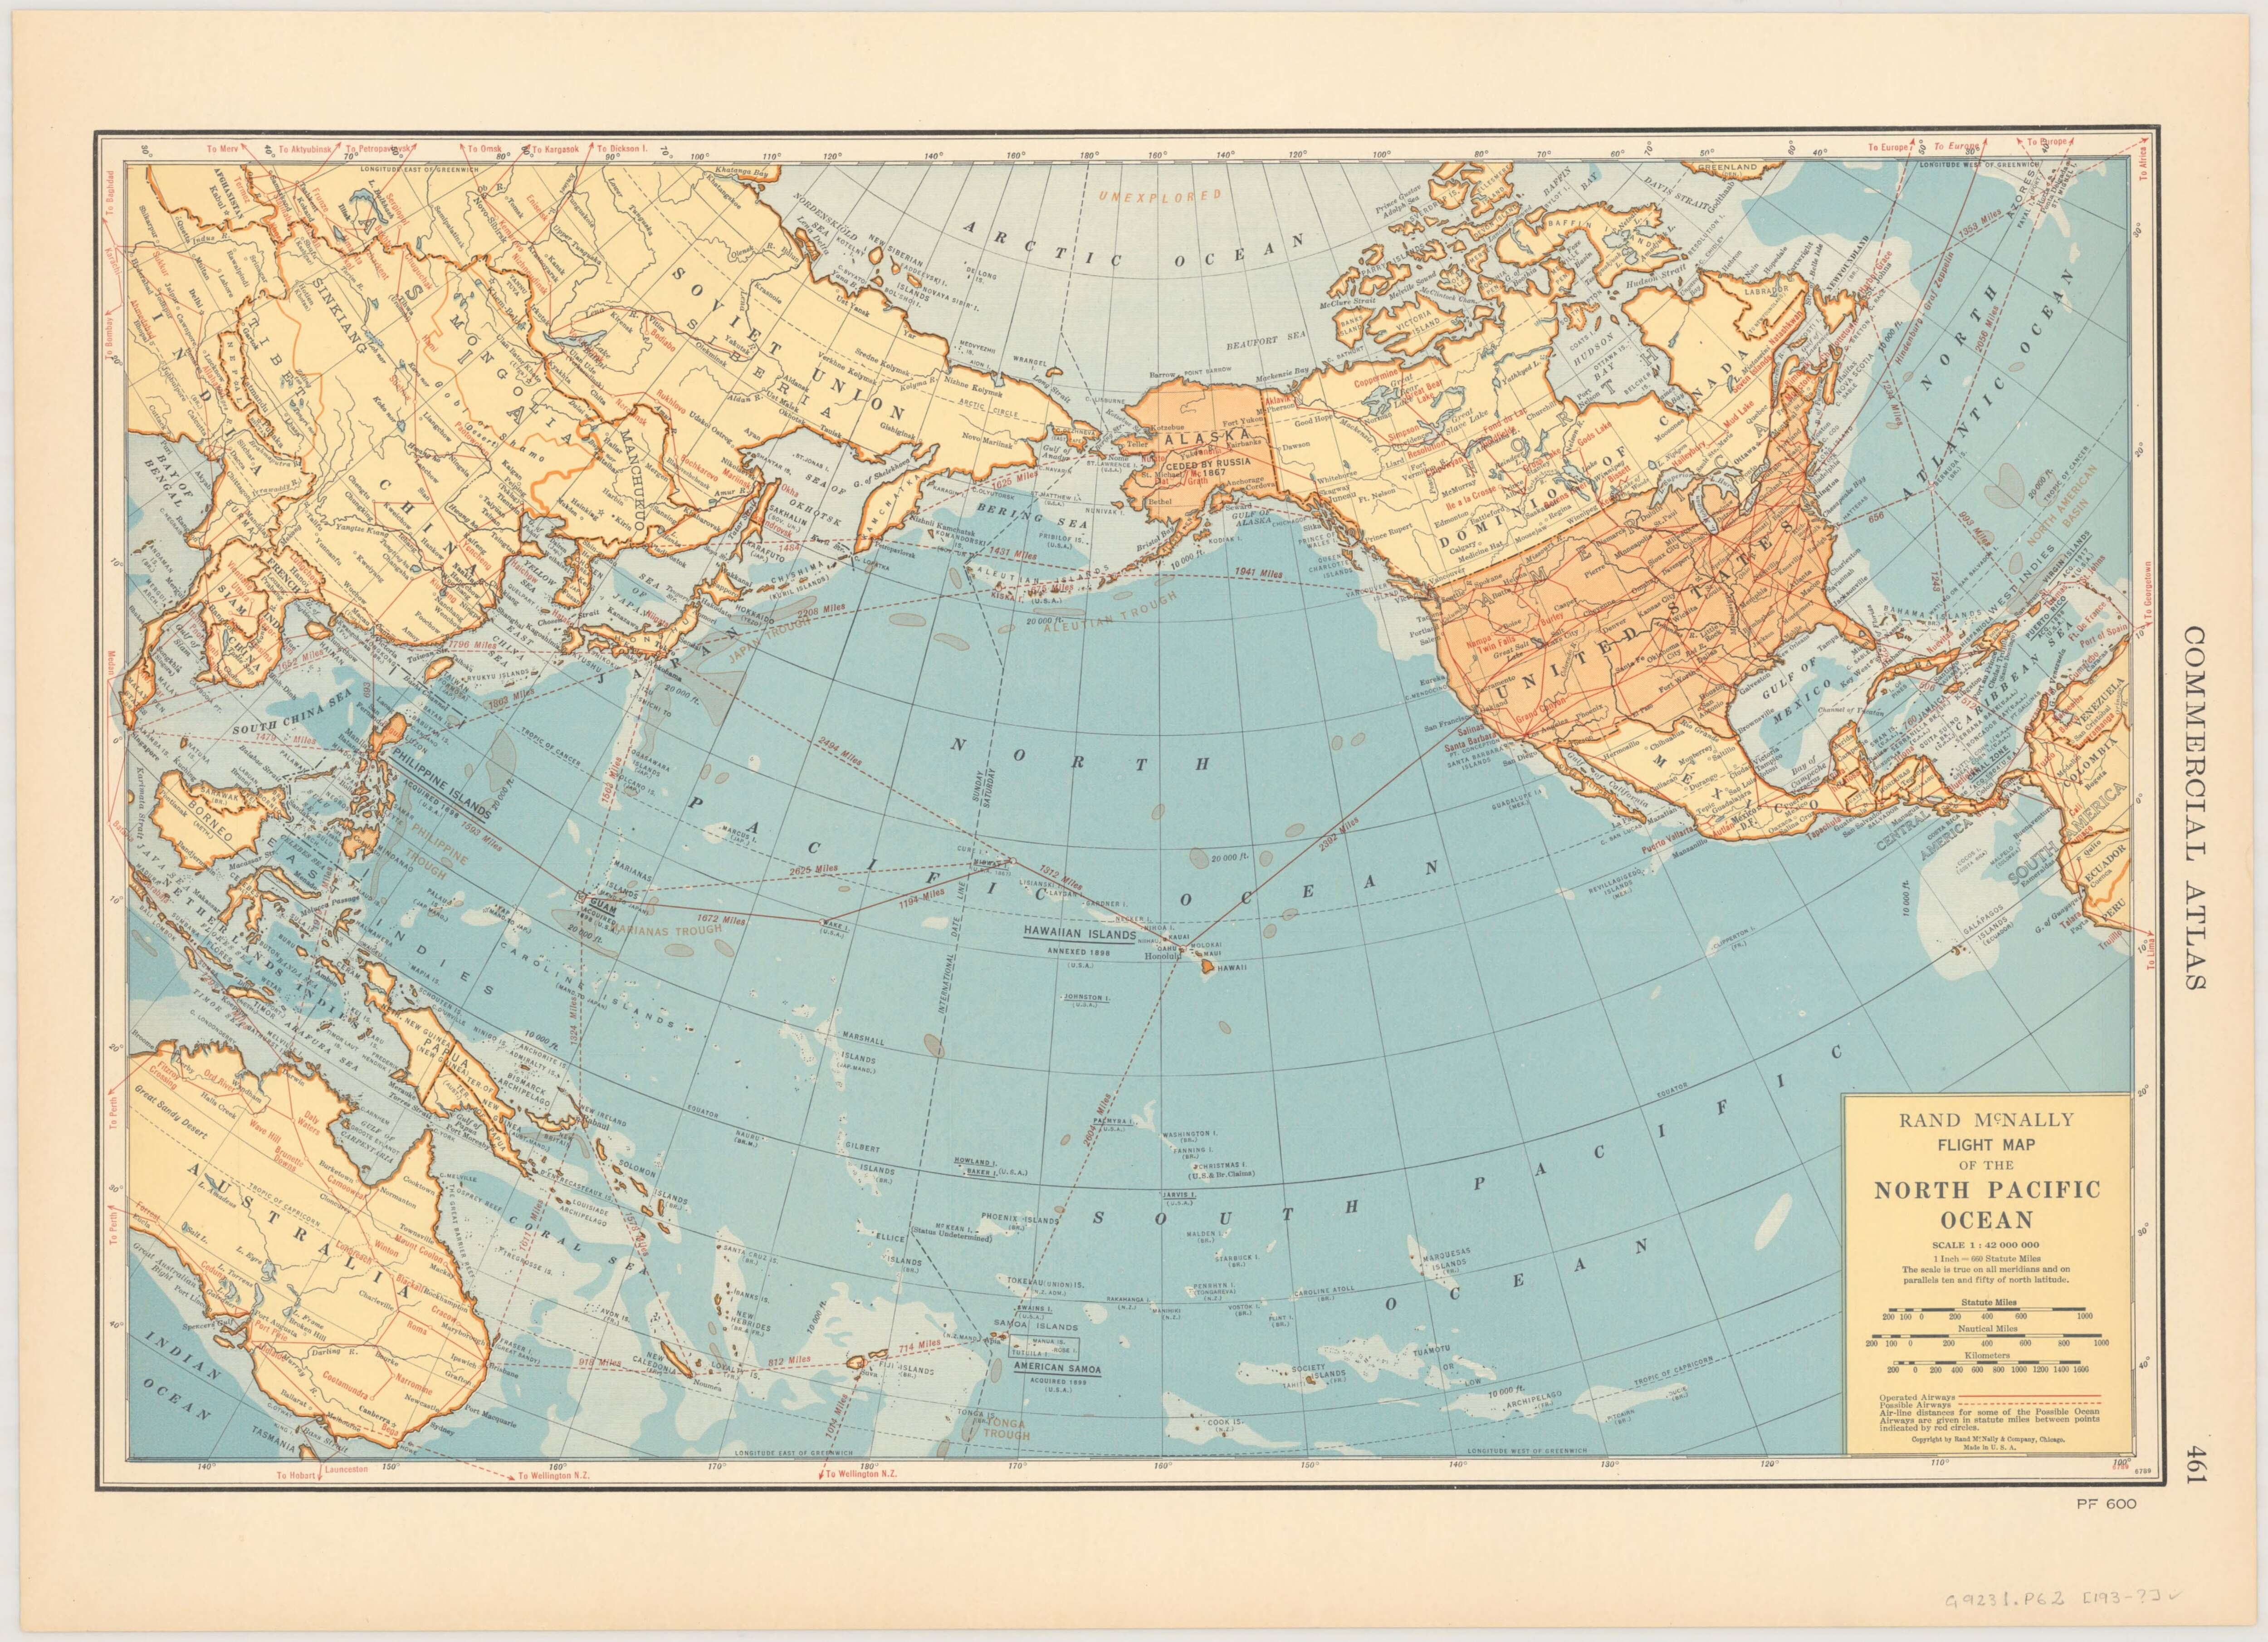 1930s Rand McNally Flight Map of the North Pacific Ocean